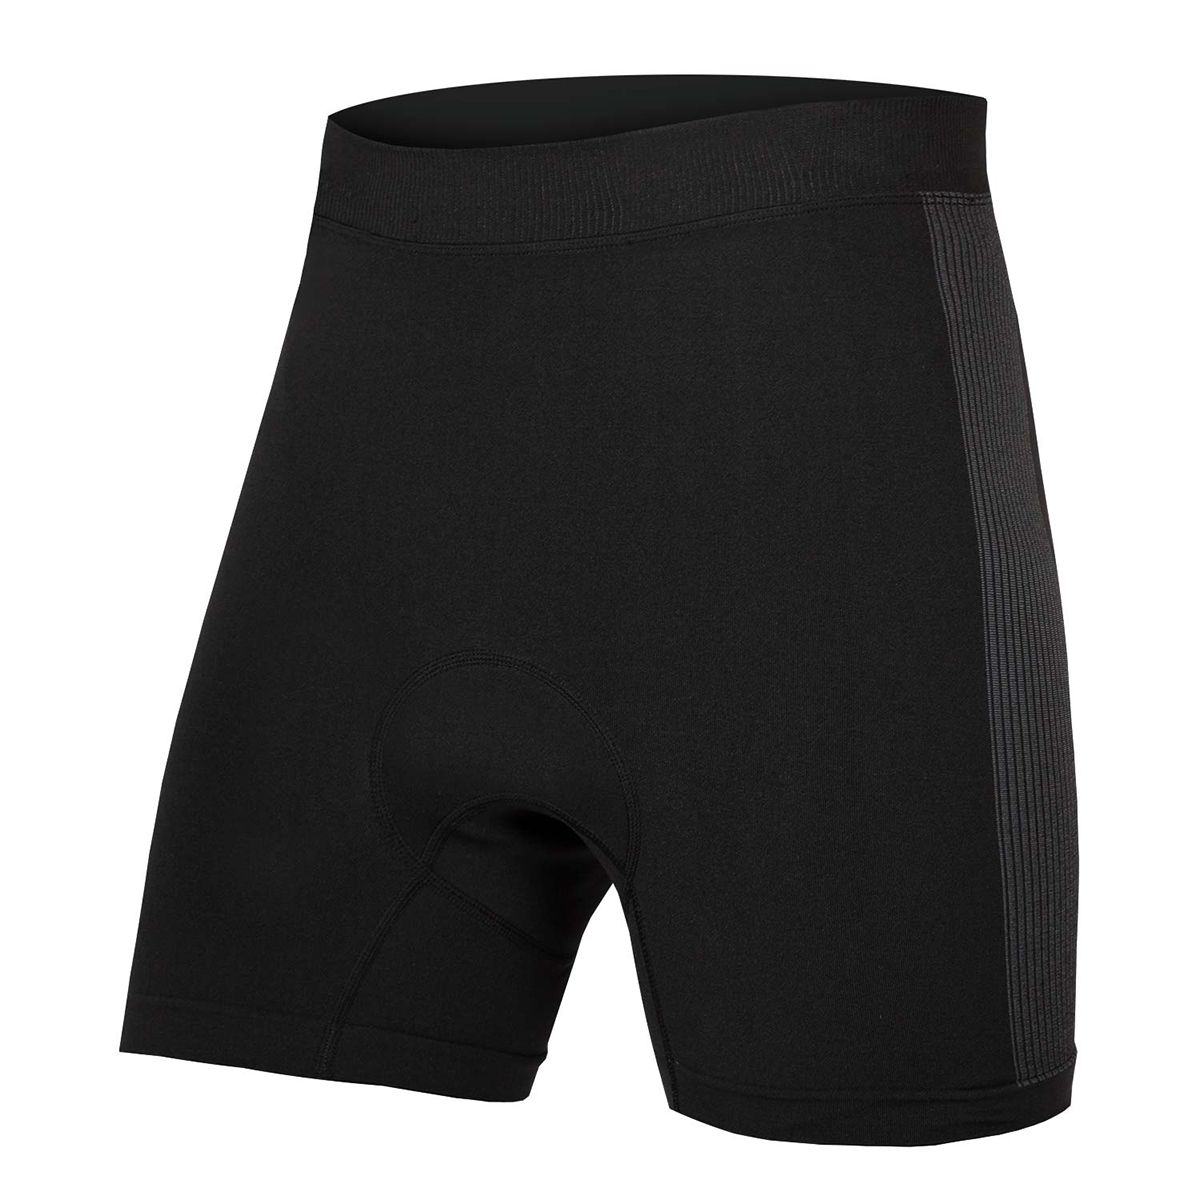 ENDURA ENGINEERED PADDED BOXER II men's cycling undershorts | Base layers